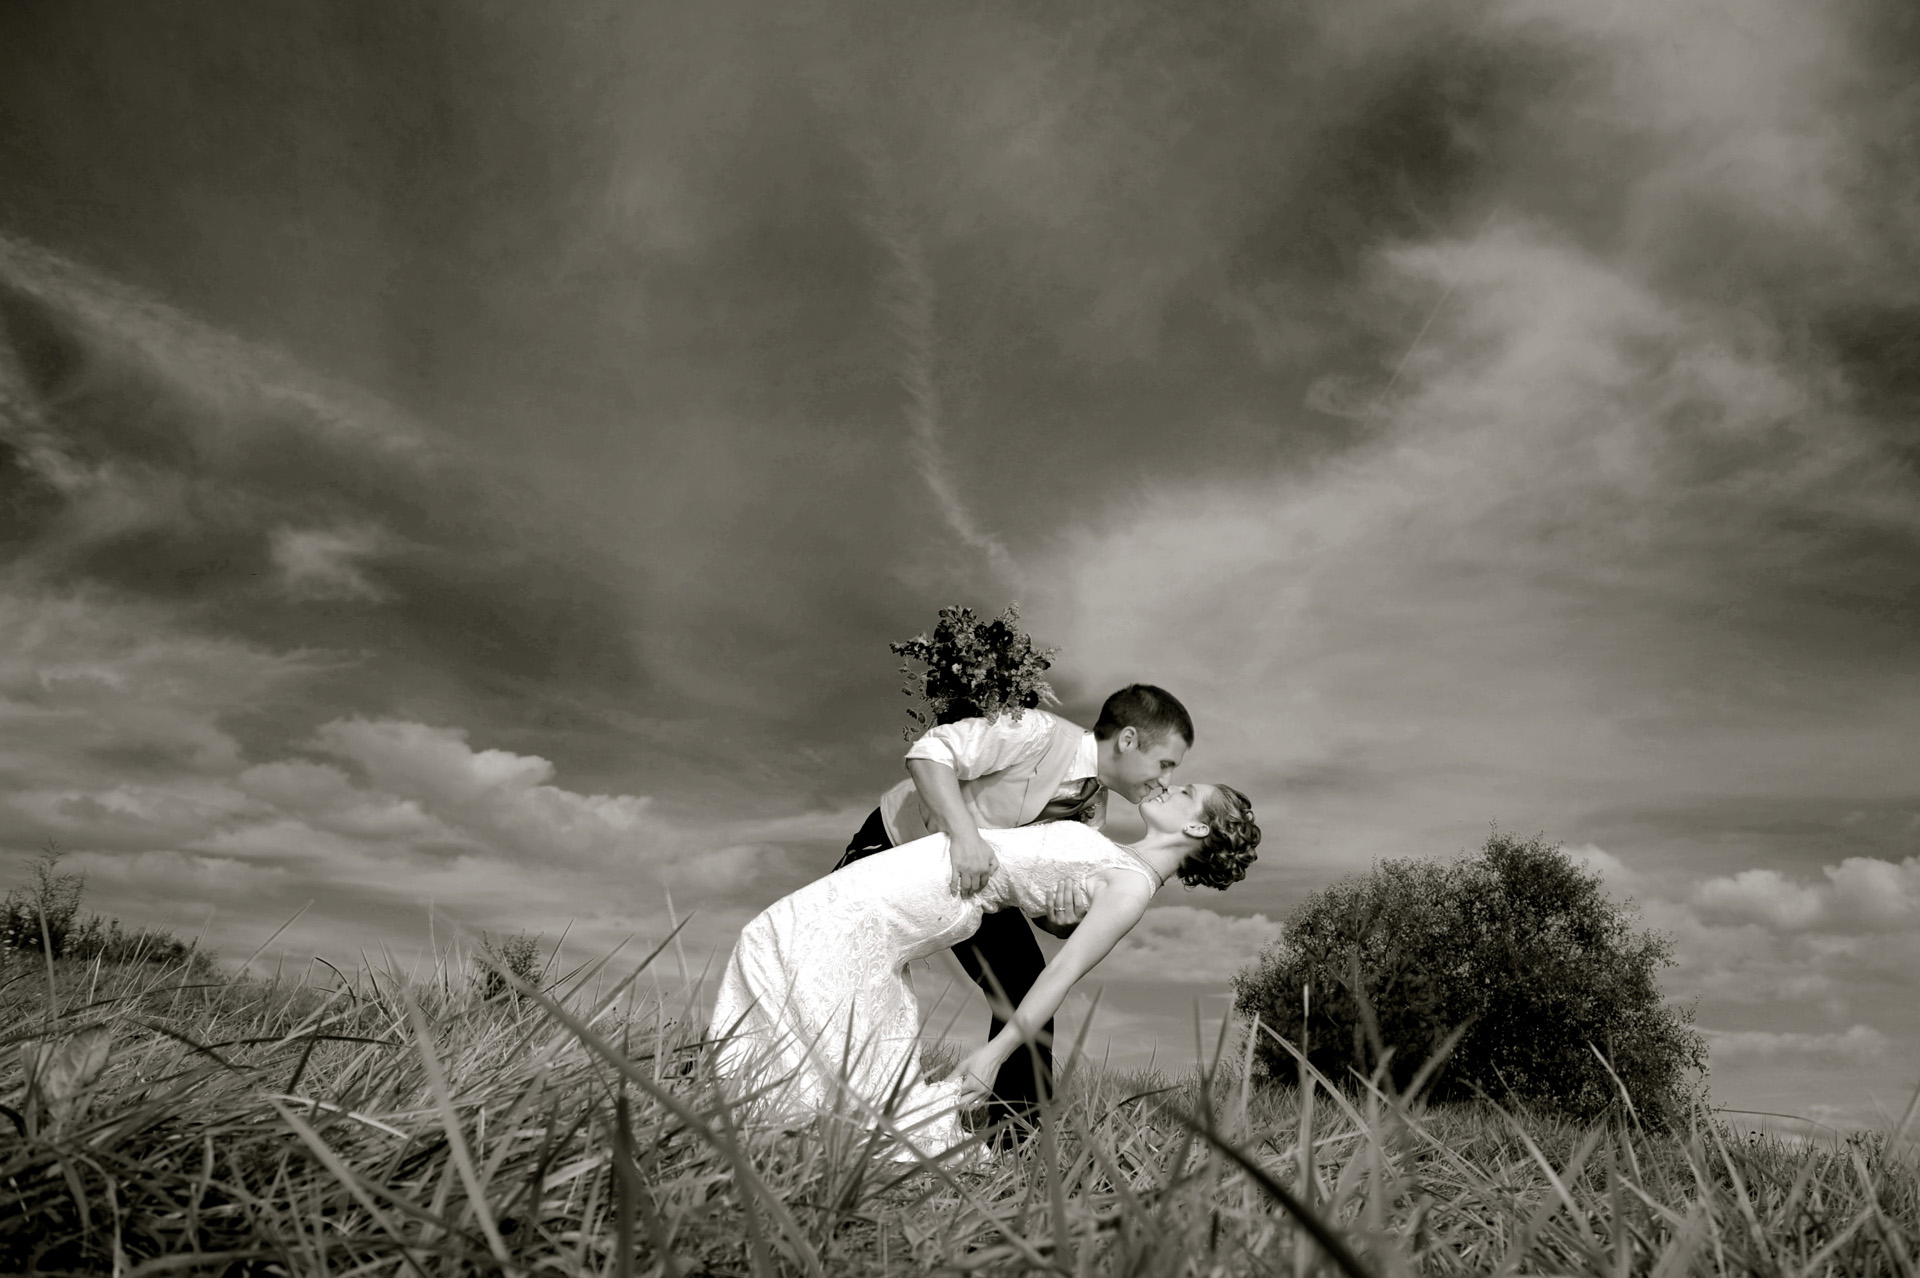 A farm wedding in Michigan features a couple doing a fabulous dip making the blue sky even more dramatic in this B&W photo at the Michigan country wedding.